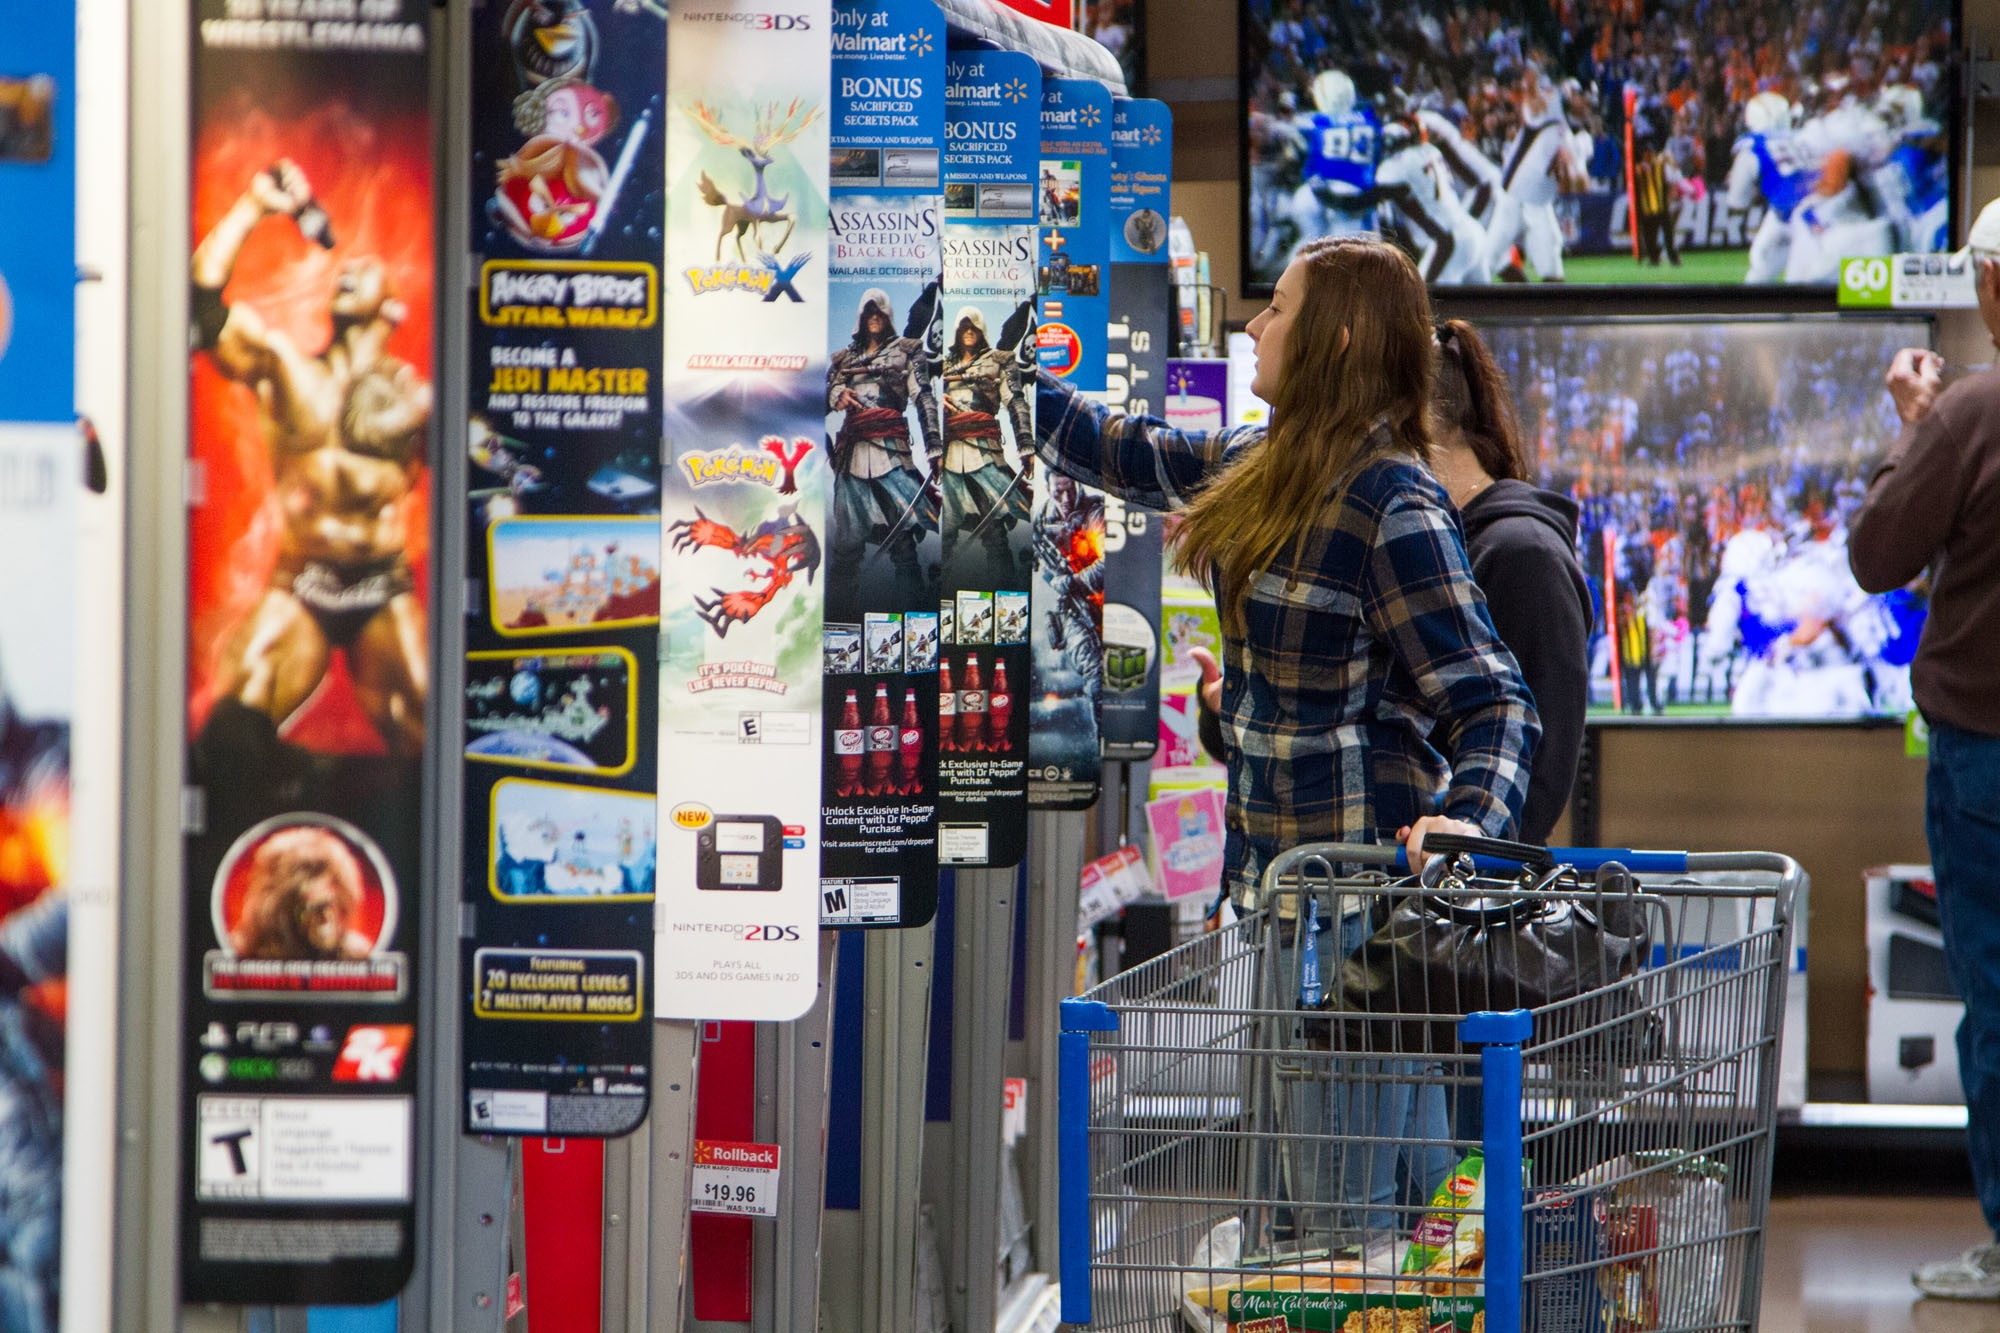 Walmart Customer Shops for Video Games